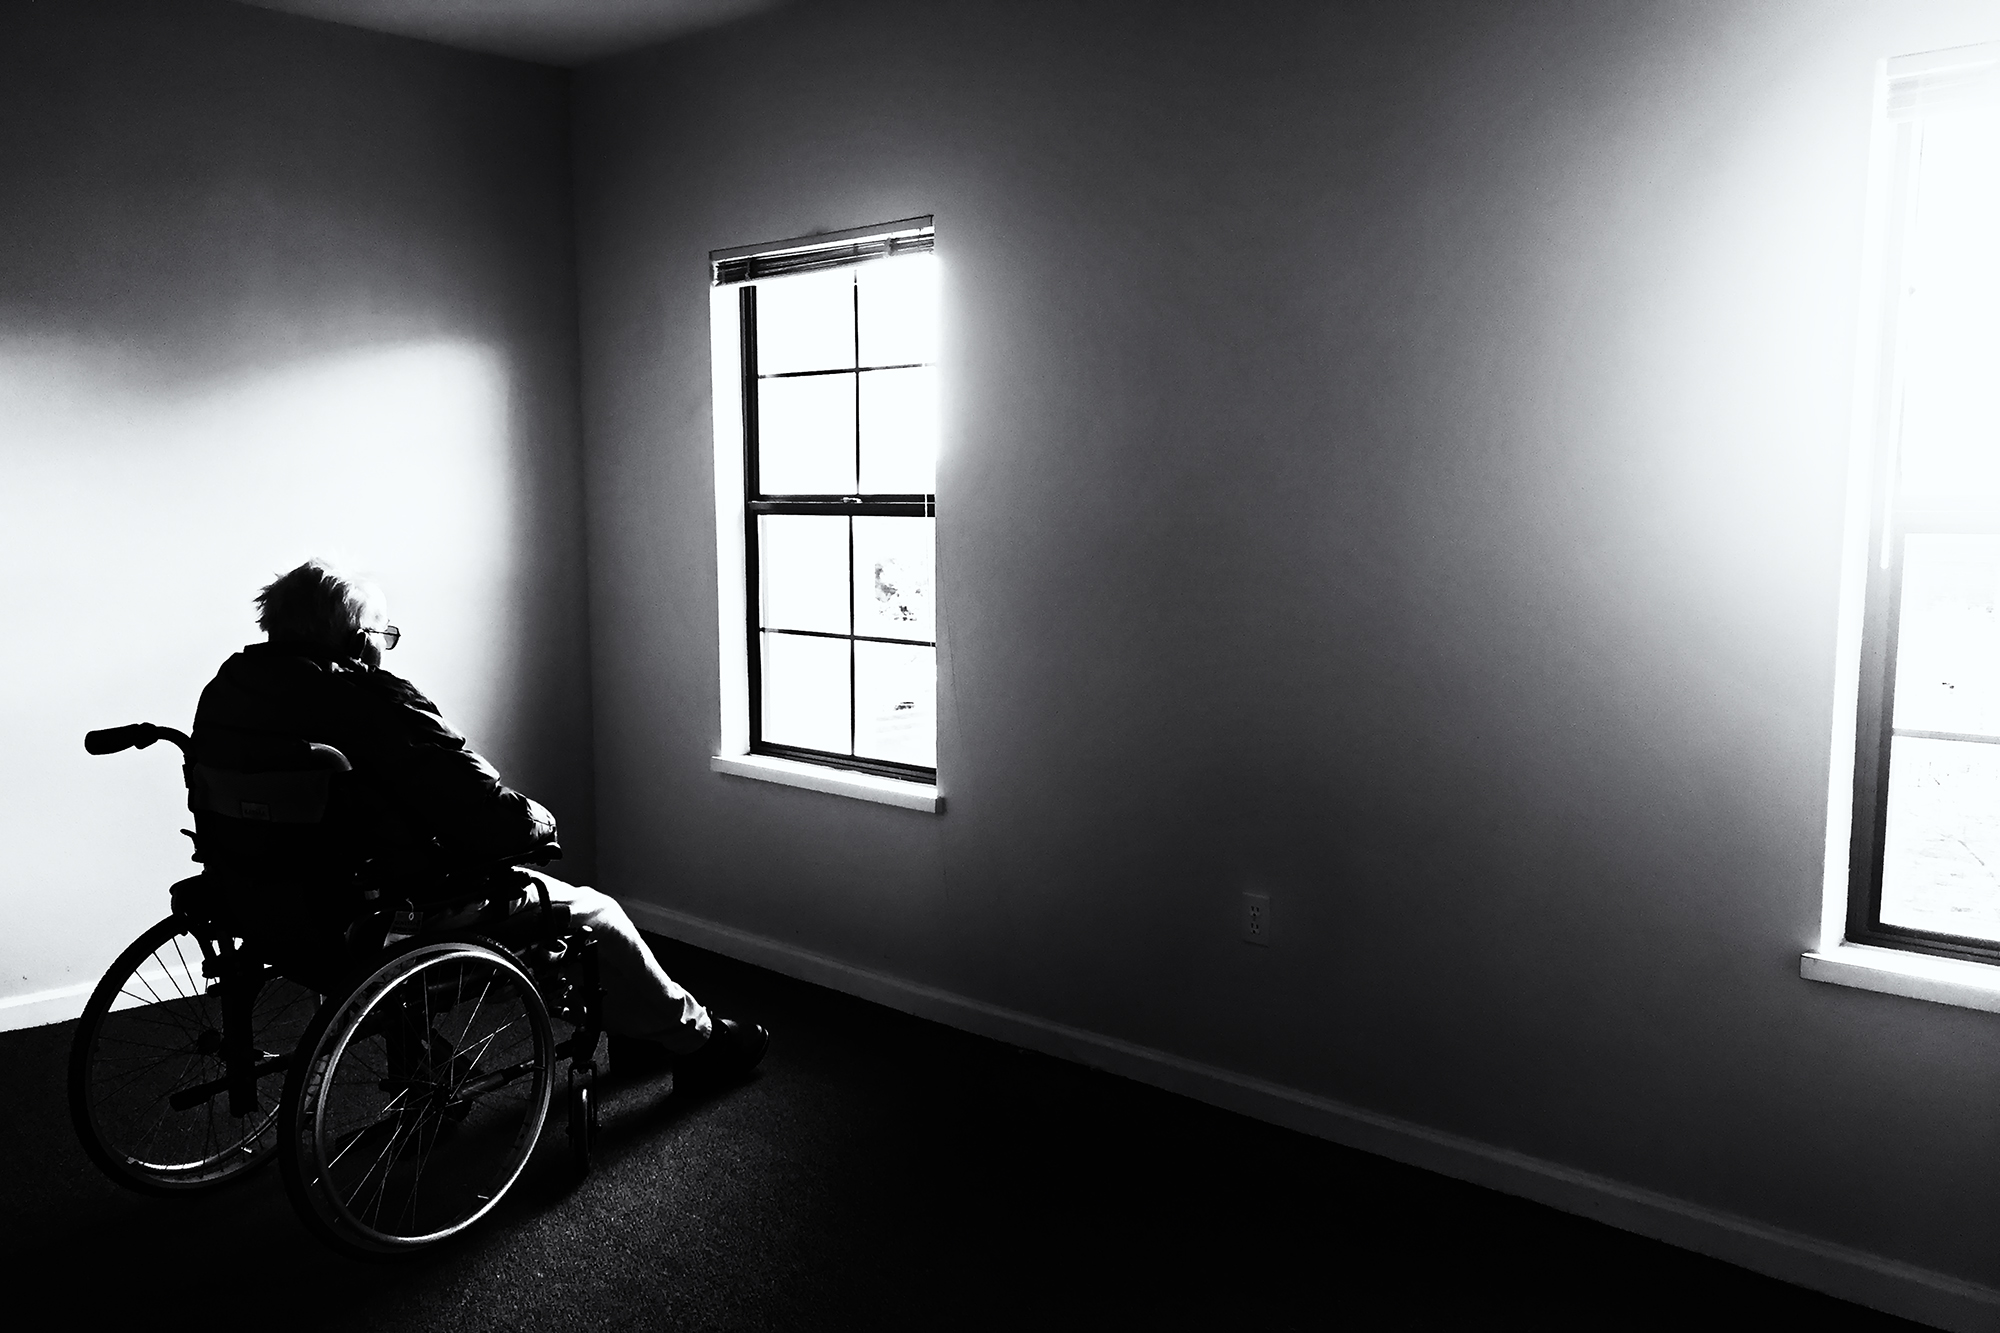 Assisted Living. Tucson, Arizona, 2015